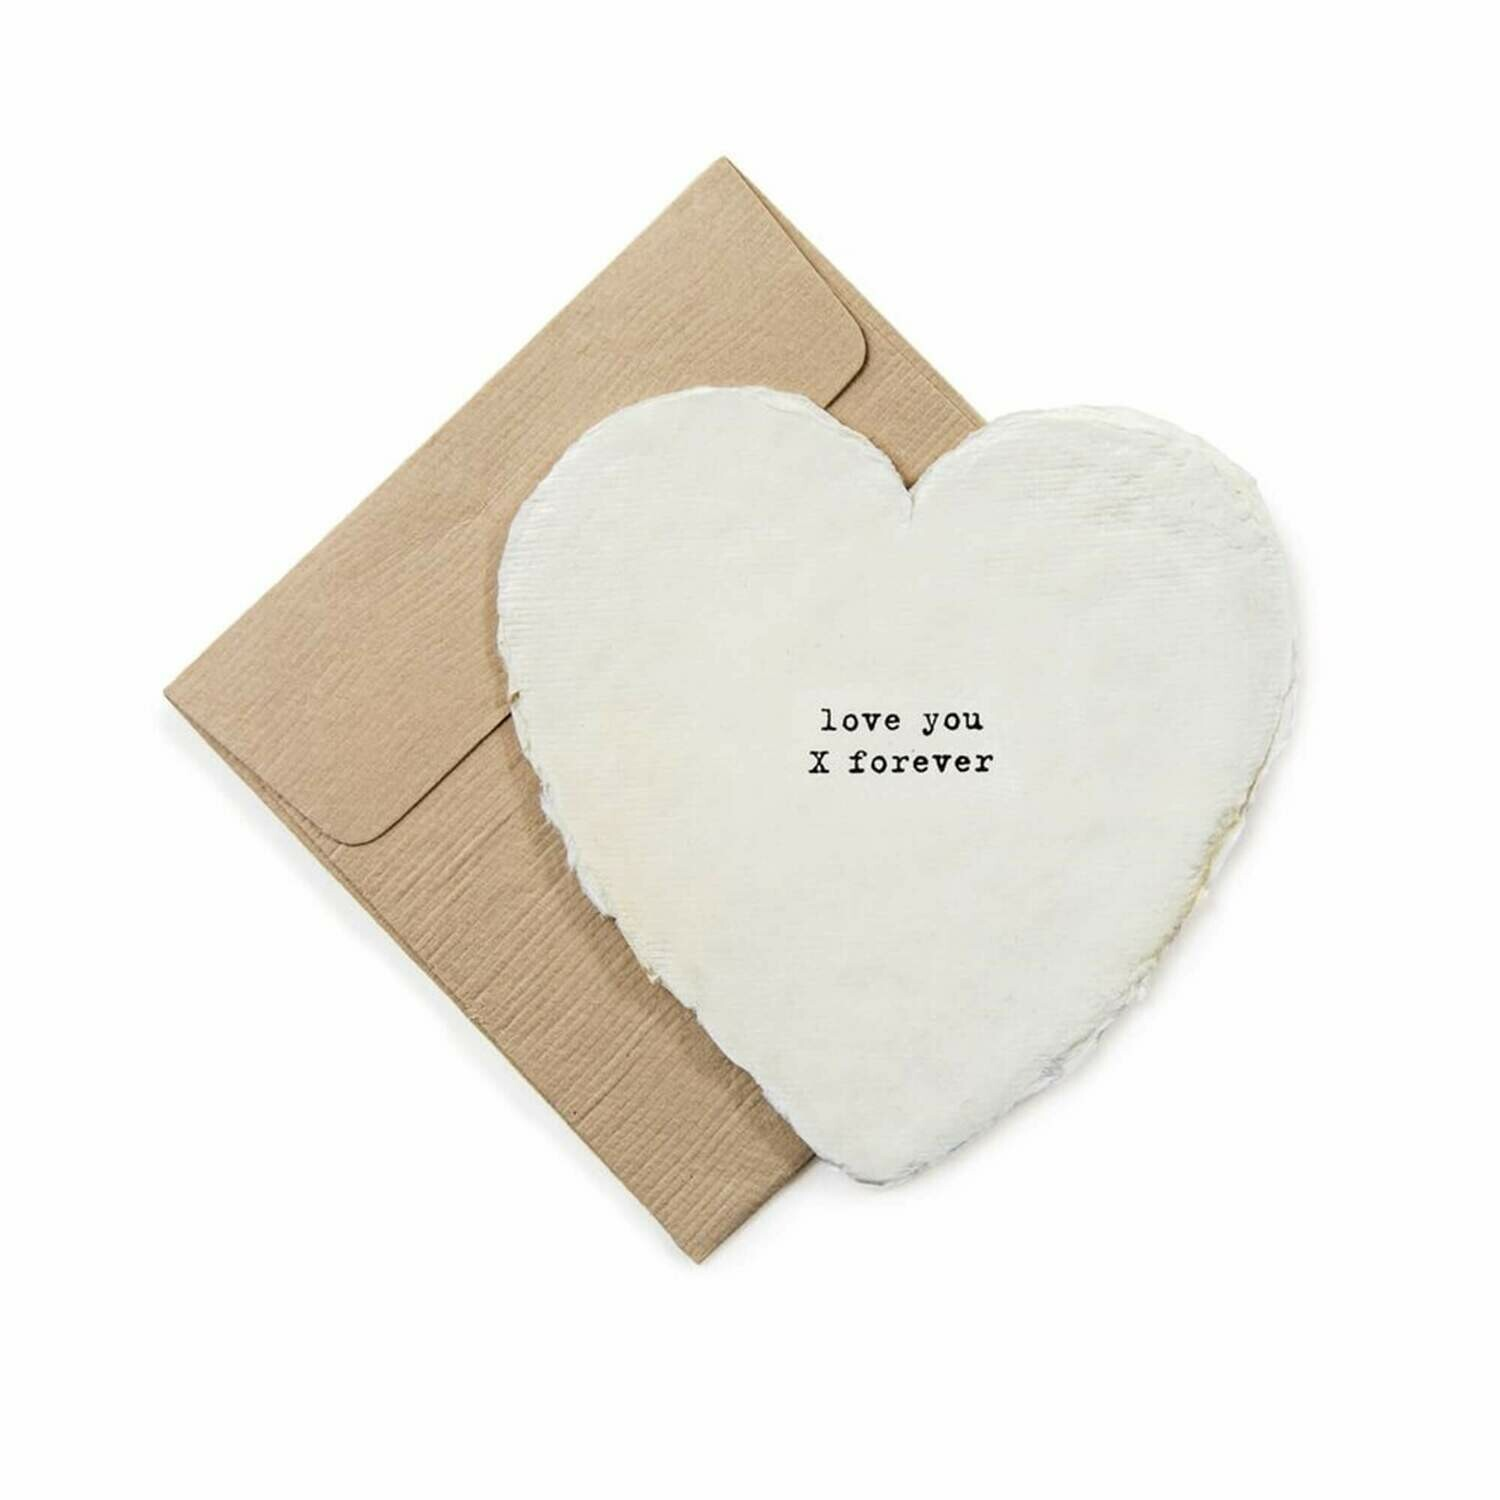 Mini Heart Shaped Card & Envelope-love you x forever